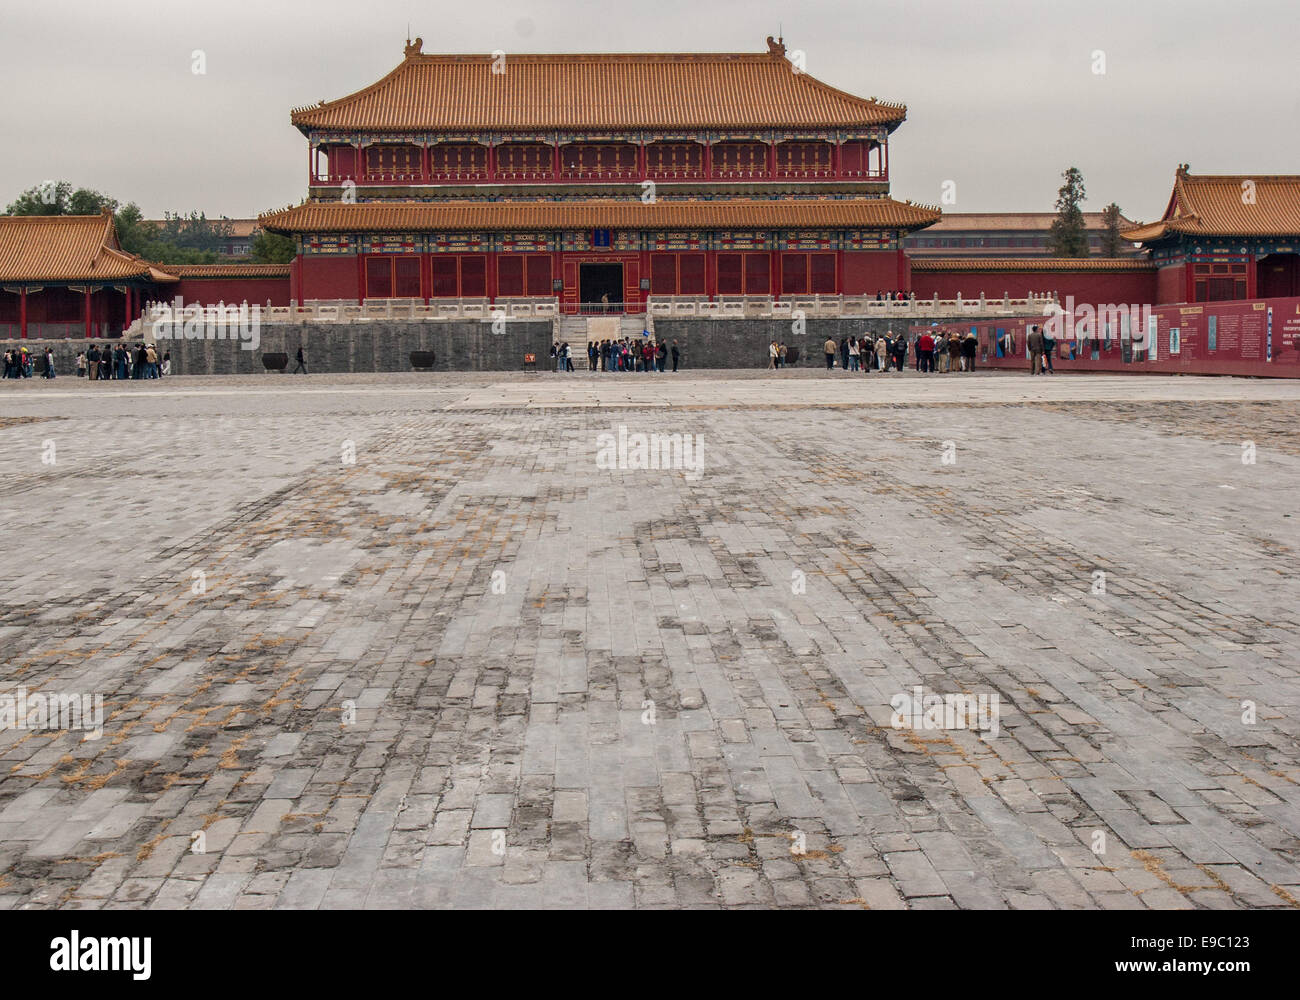 Oct. 26, 2006 - Beijing, China - The Pavilion of Spreading Righteousness, or Belvedere of Spreading Righteousness - Stock Image